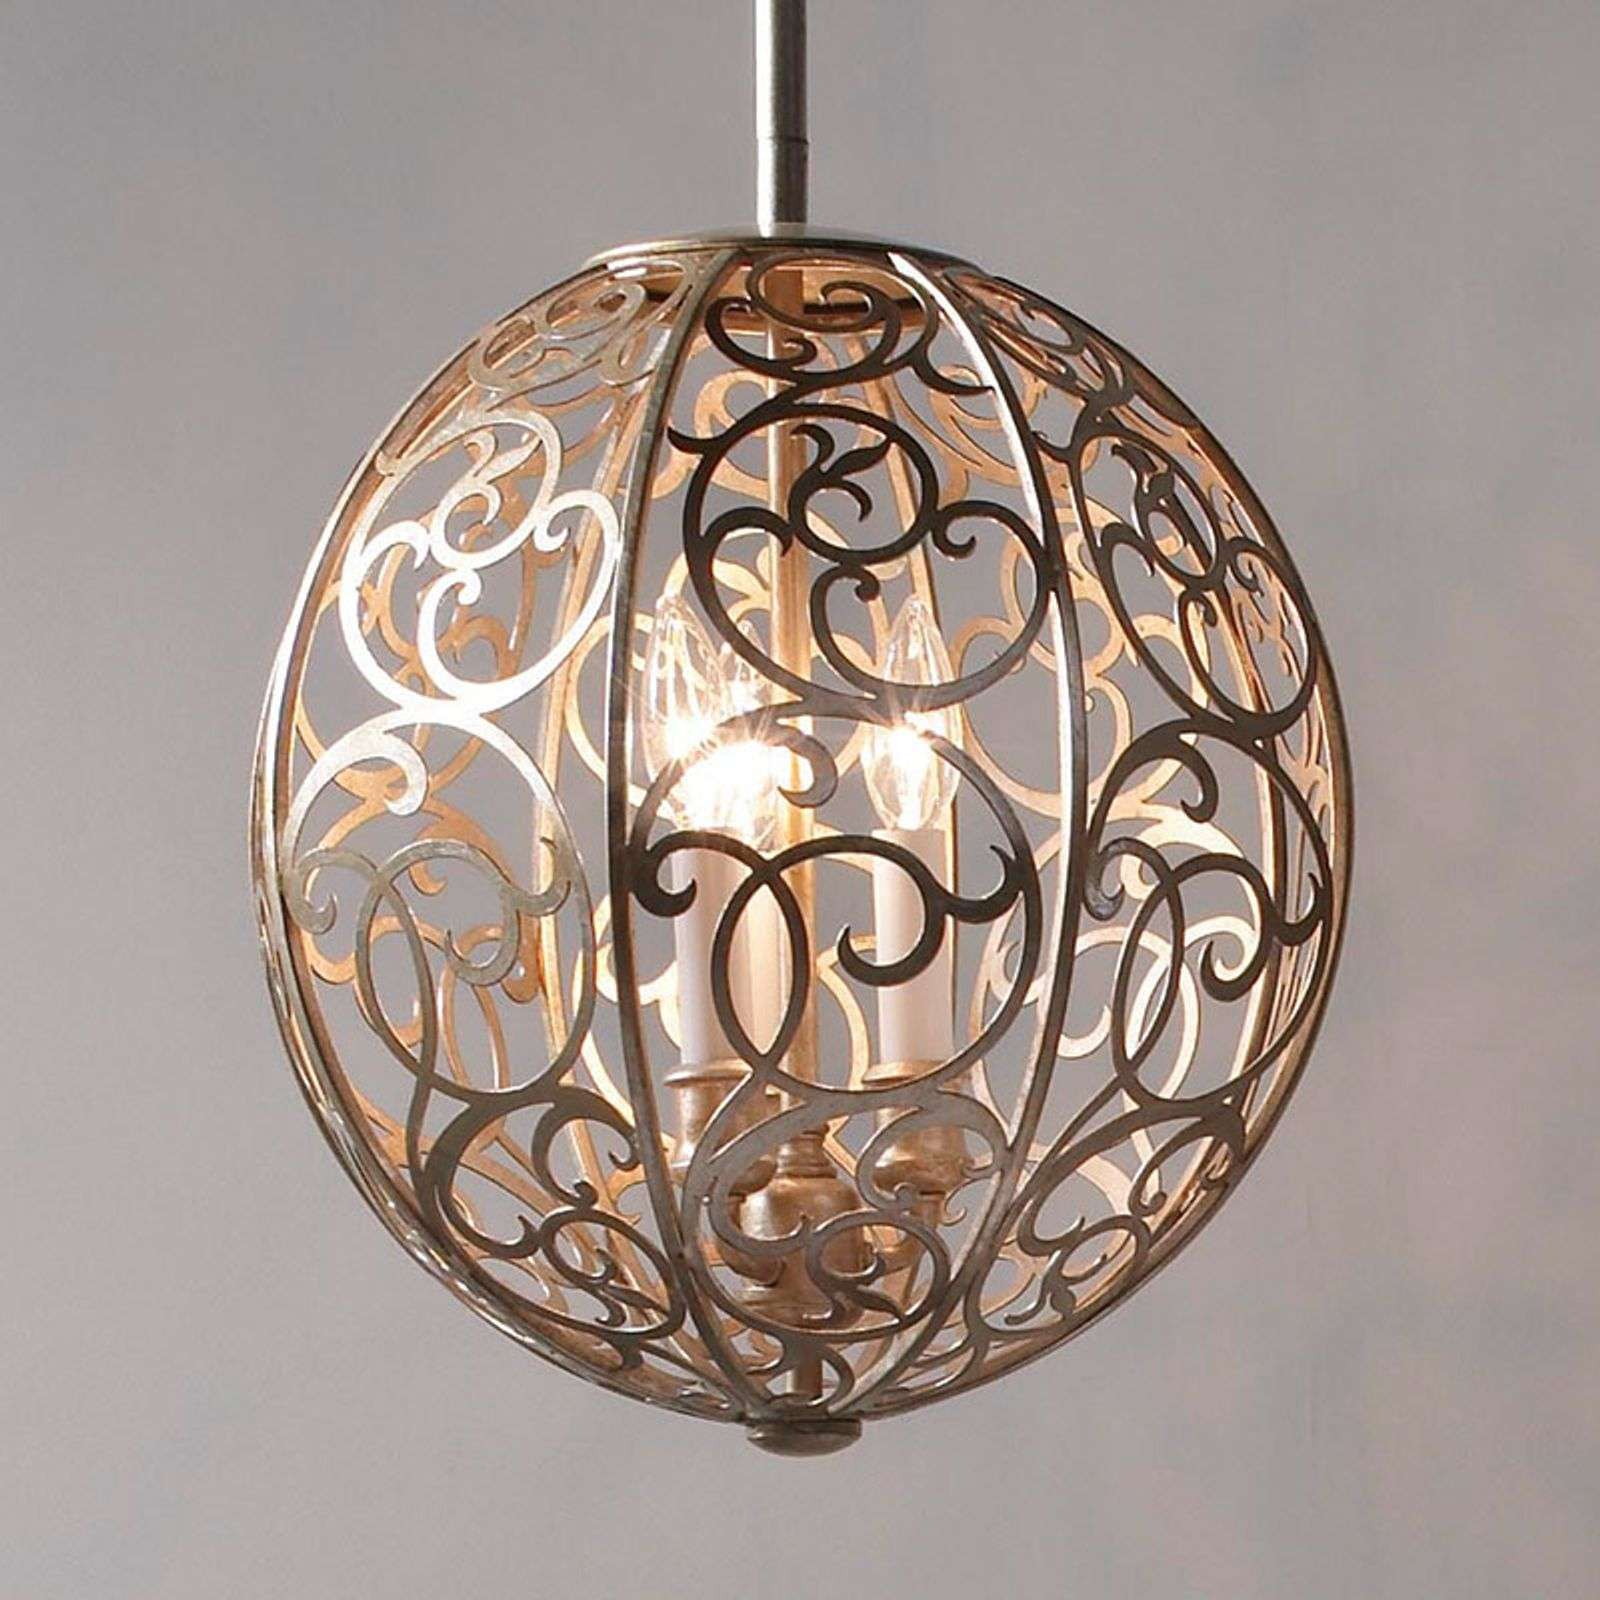 Arabesque lámpara de suspension, patrón artístico